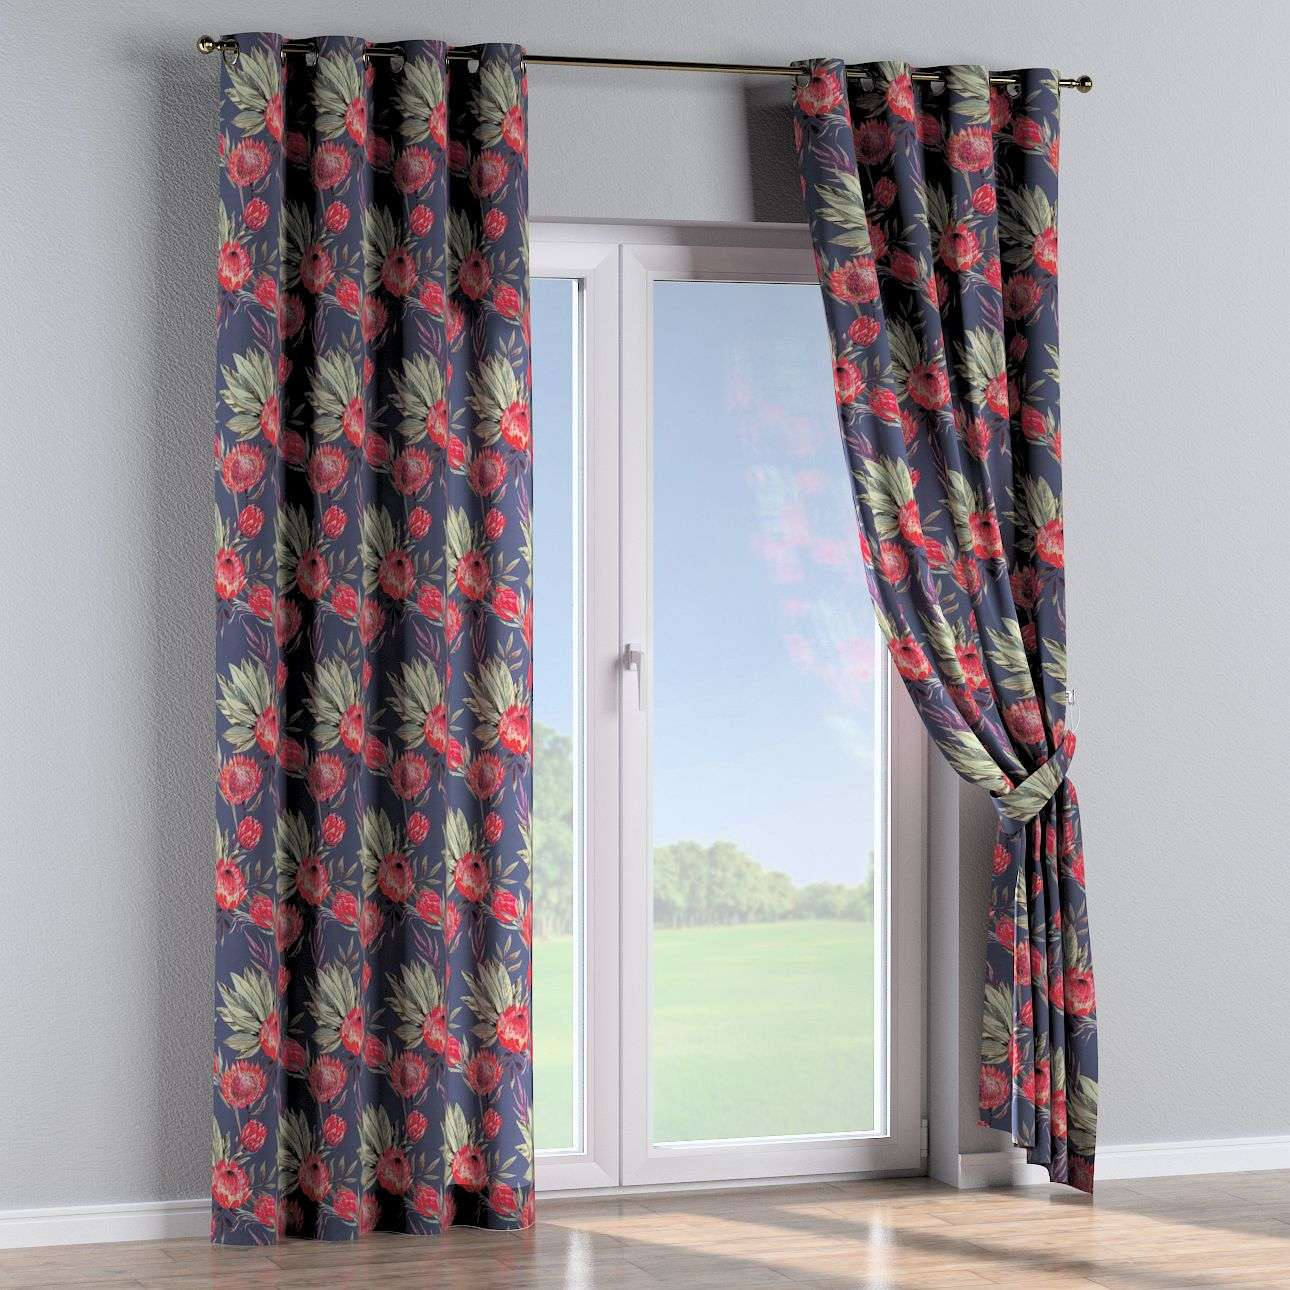 Eyelet curtains 130 x 260 cm (51 x 102 inch) in collection New Art, fabric: 141-57